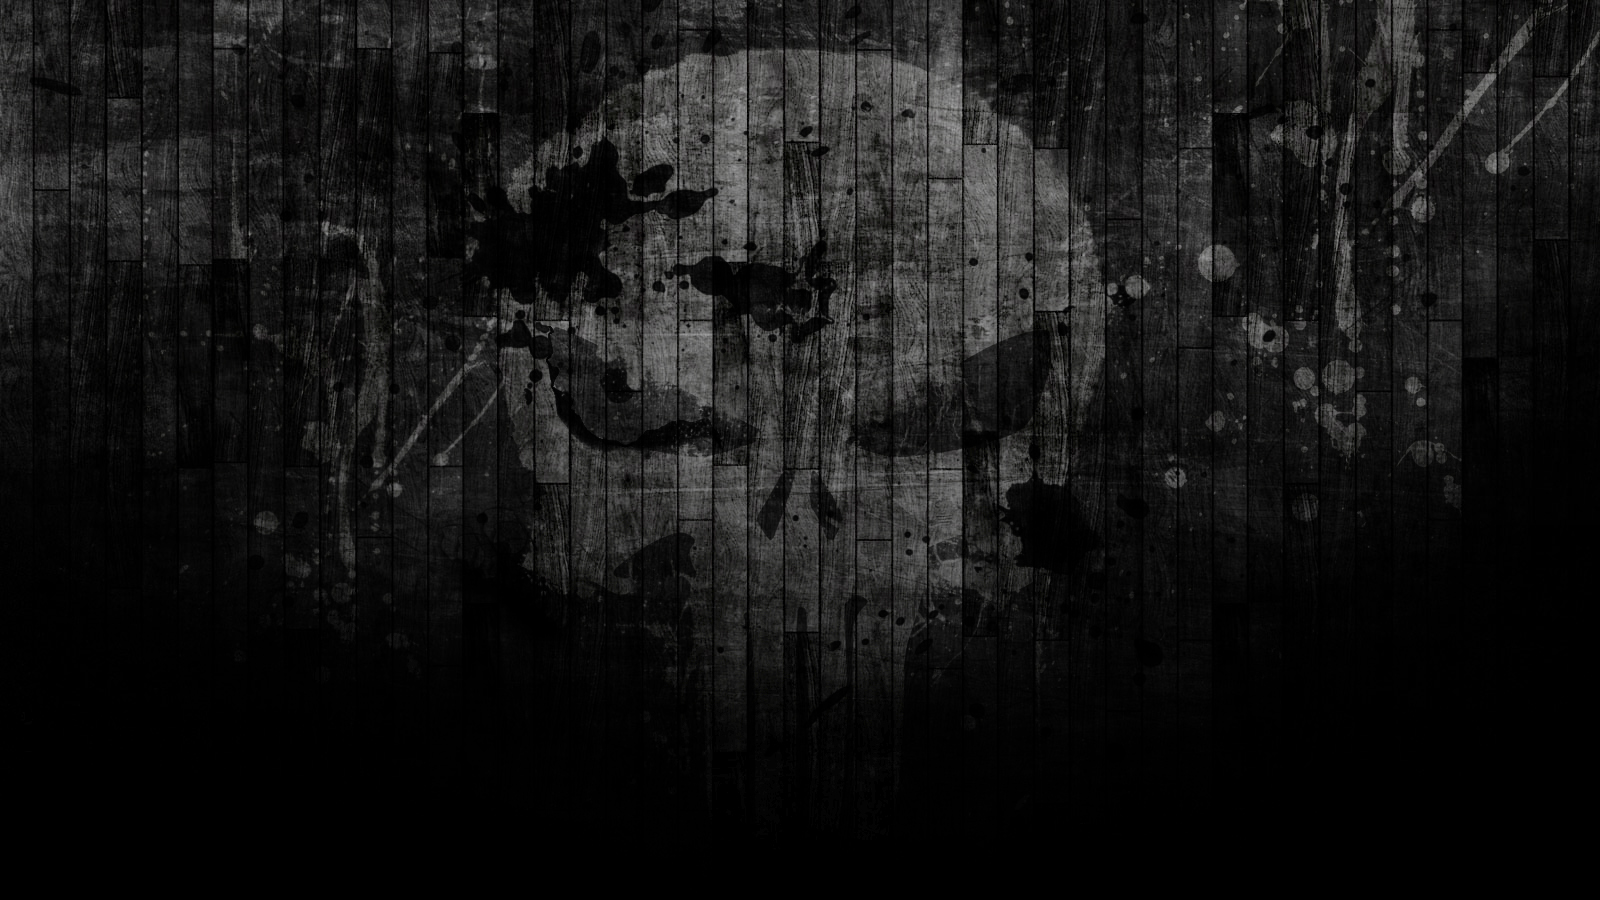 Free Download The Punisher Wallpaper By Squiddytron